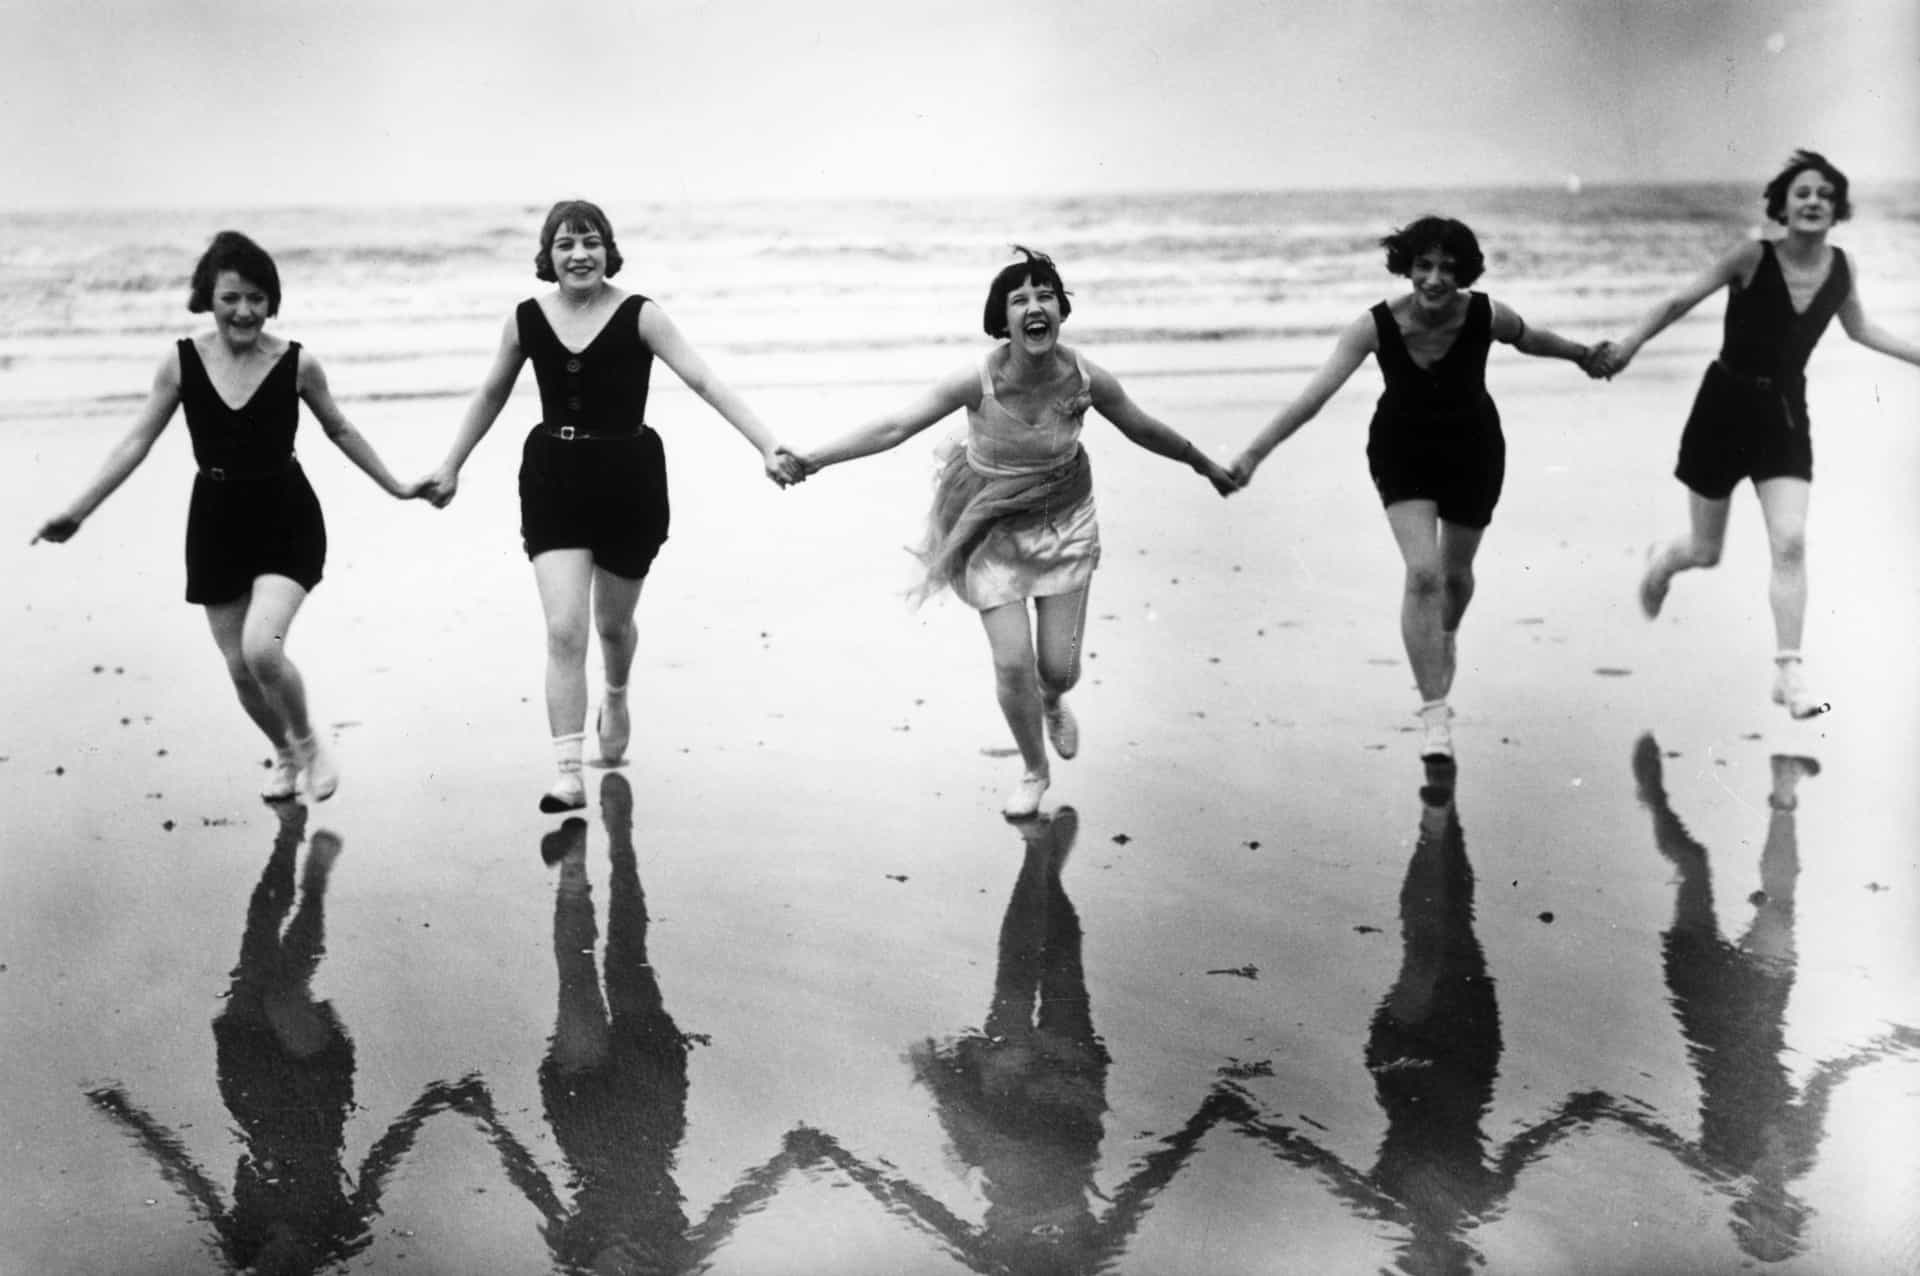 Blast from the past: Vintage photos of summertime